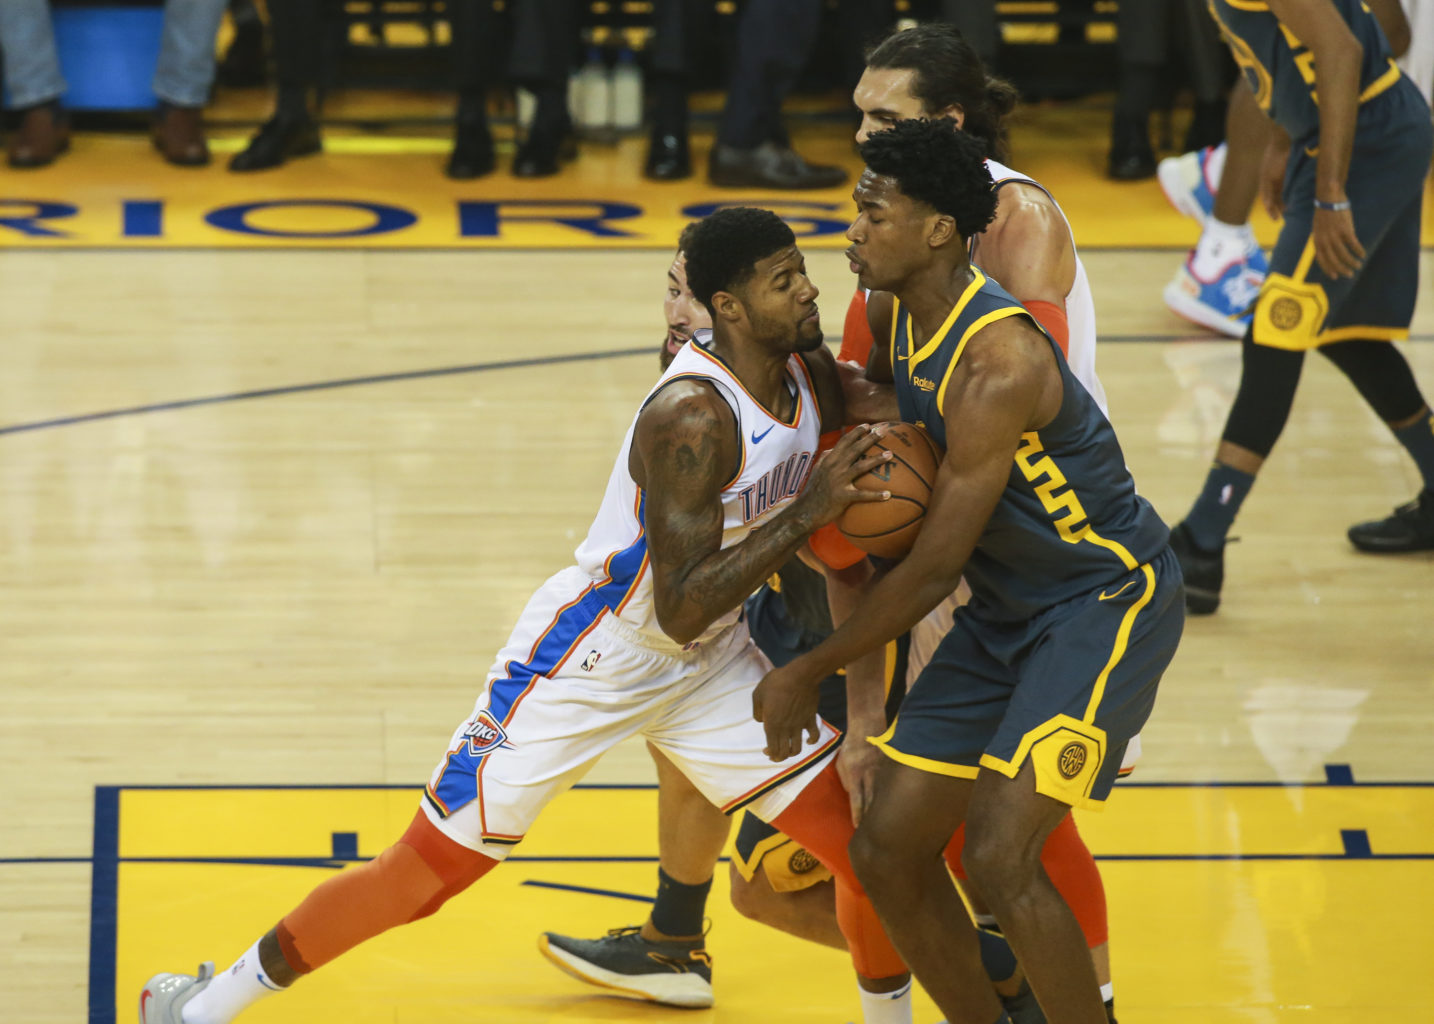 Forward Damion Jones (15) of the Golden State Warriors tries to block the path of Paul George (13) of the Oklahoma City Thunder during the first quarter of the game on November 21, 2018 at Oracle Arena in Oakland, California. (Chris Victorio - Special to S.F. Examiner)